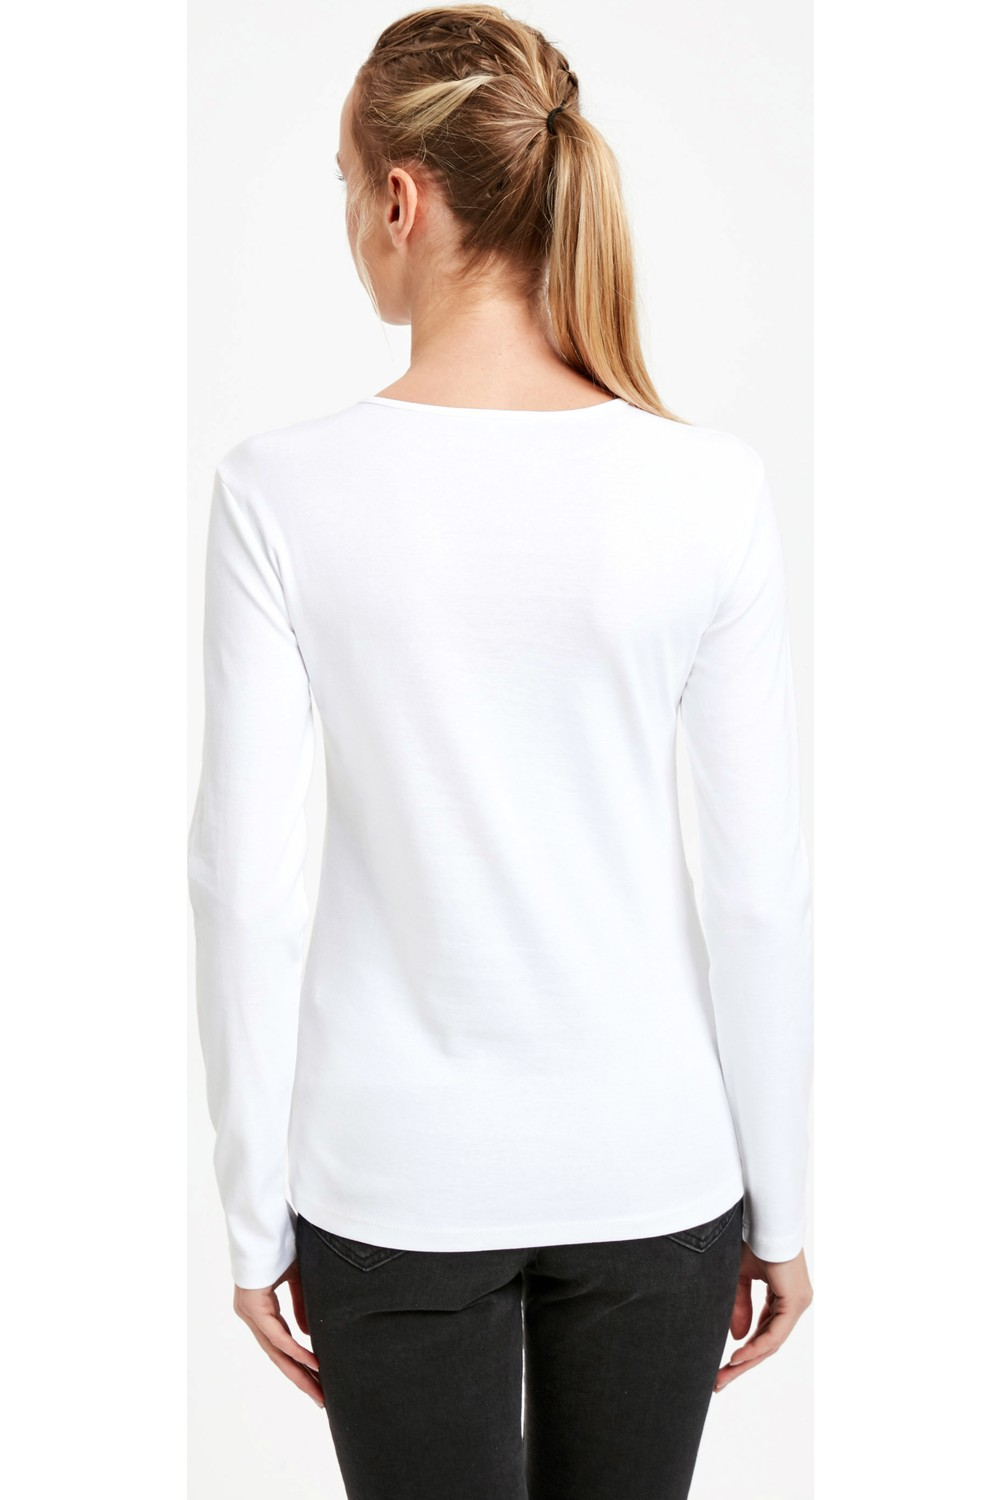 LC Waikiki Women's Solid Top